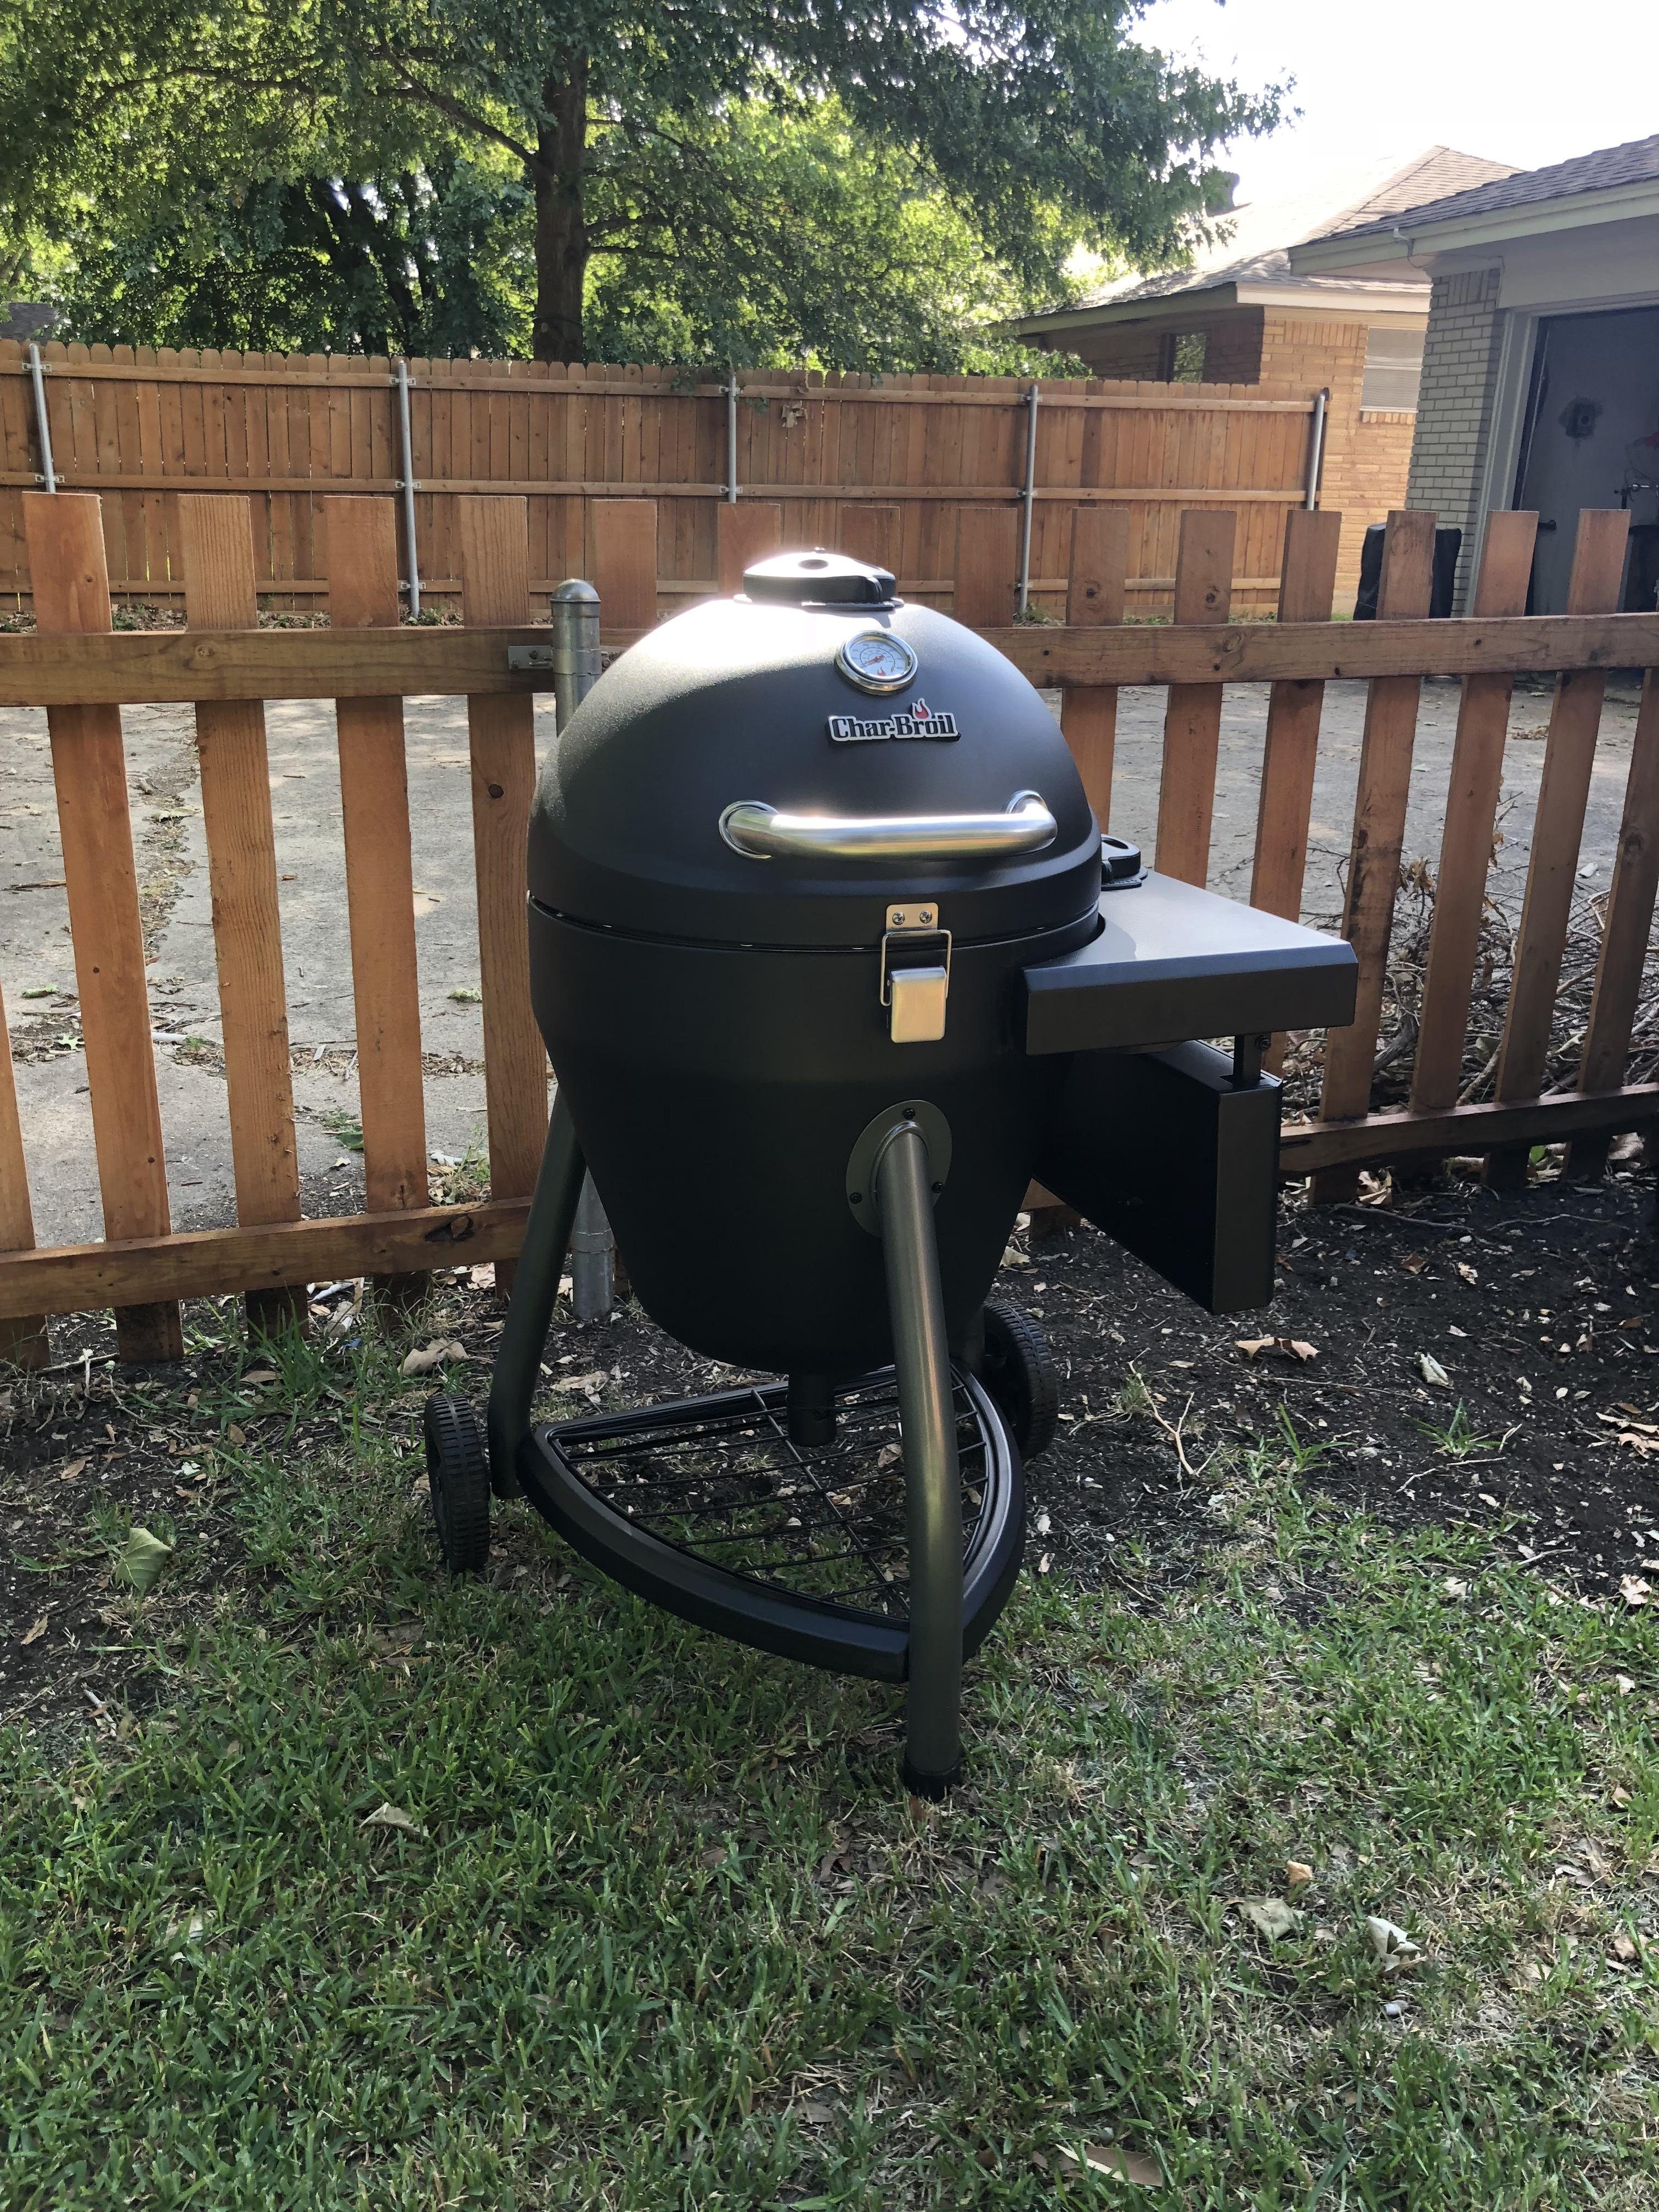 Barbecue Aldi Aldi Had This Char Broil Kamado Cooker On Clearance For 100